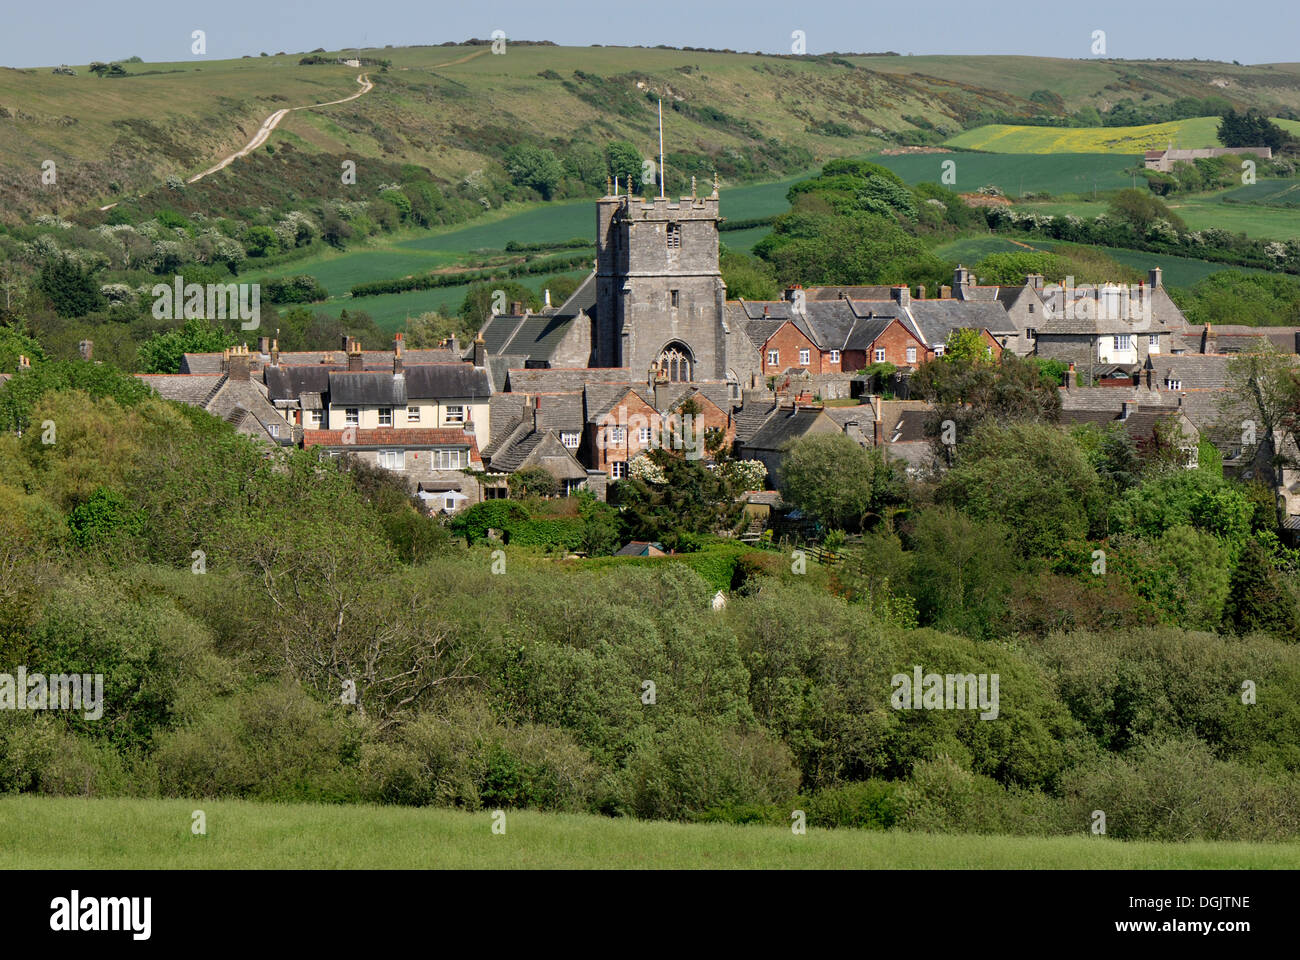 Corfe Castle Village, Dorset, southern England, England, UK, Europe - Stock Image